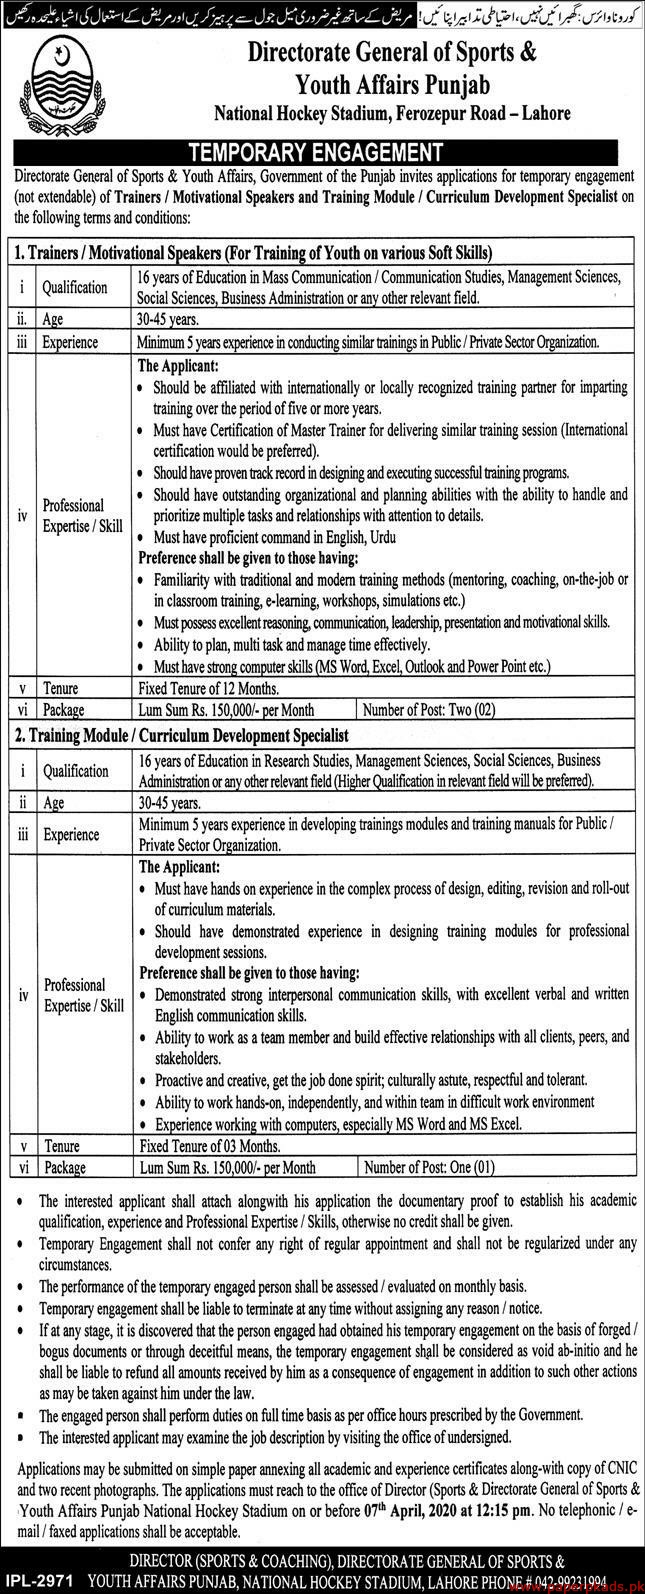 Directorate General of Sports & Youth Affairs Punjab Jobs 2020 Latest